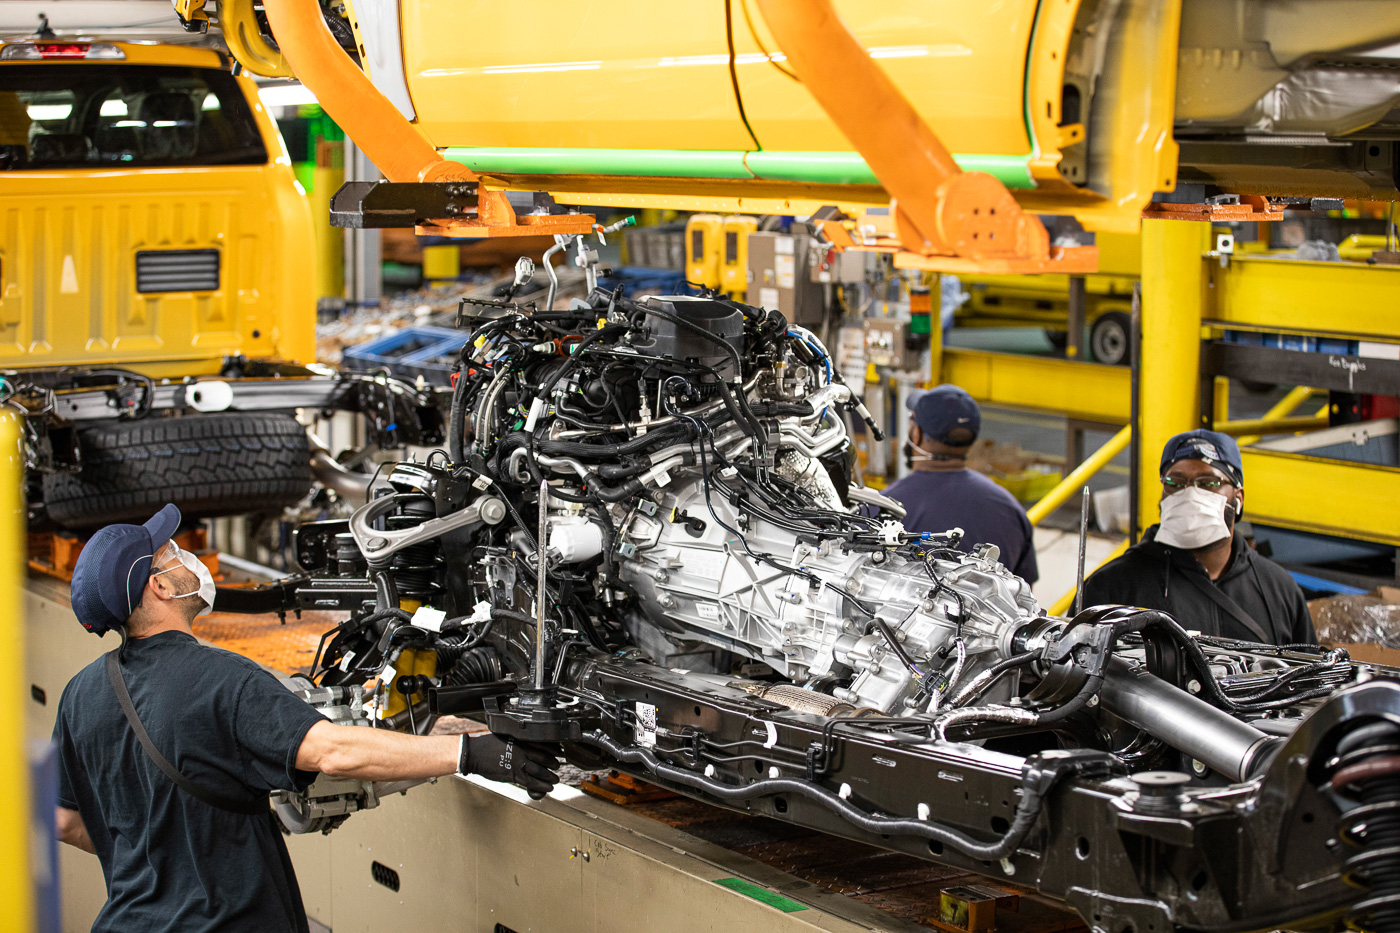 2021-bronco-production-michigan-assembly-plant-13.jpg